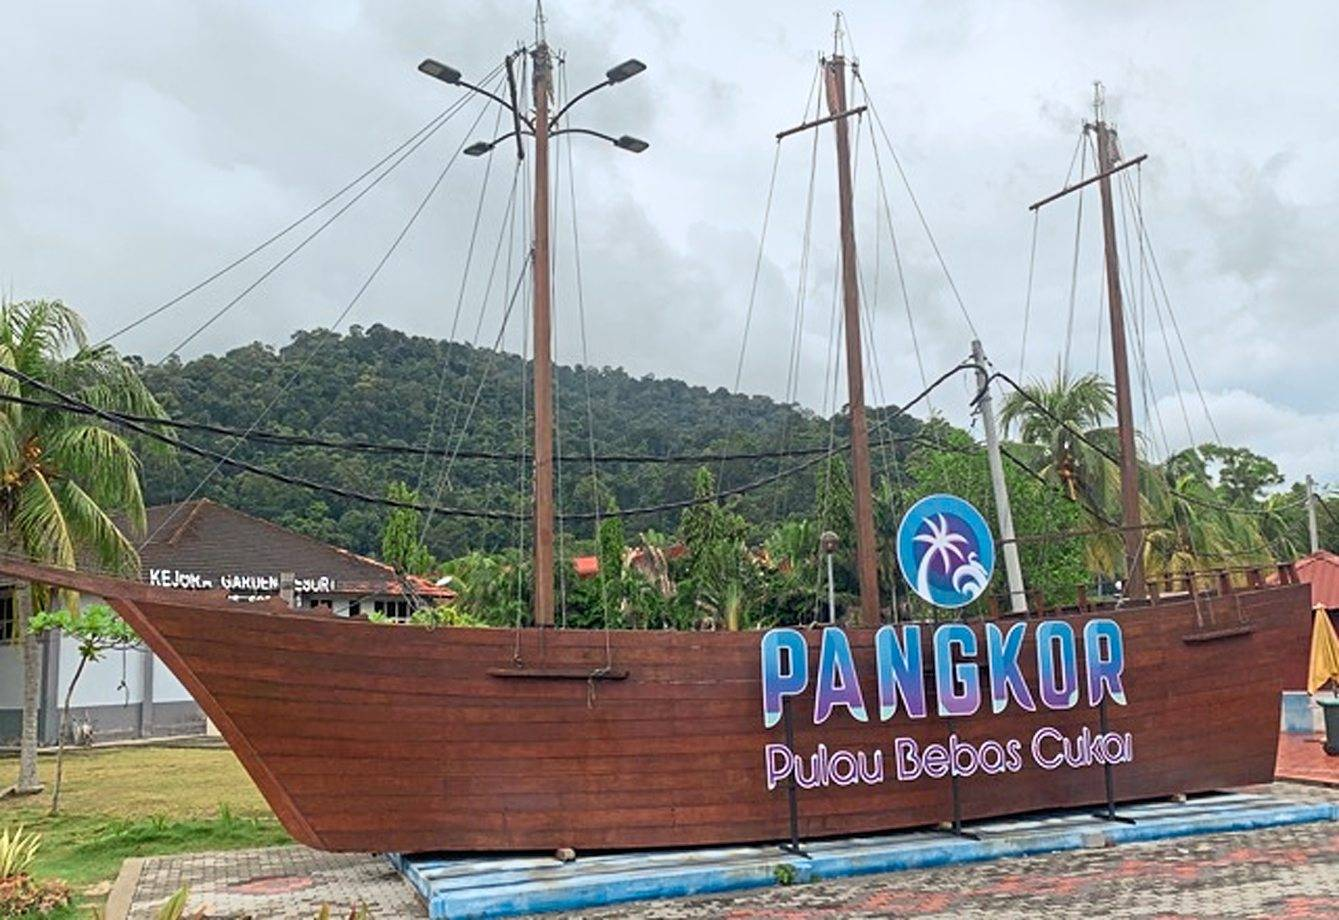 Pangkor's duty free status will commence in January 2020, drawing the attention of both local and international tourists.